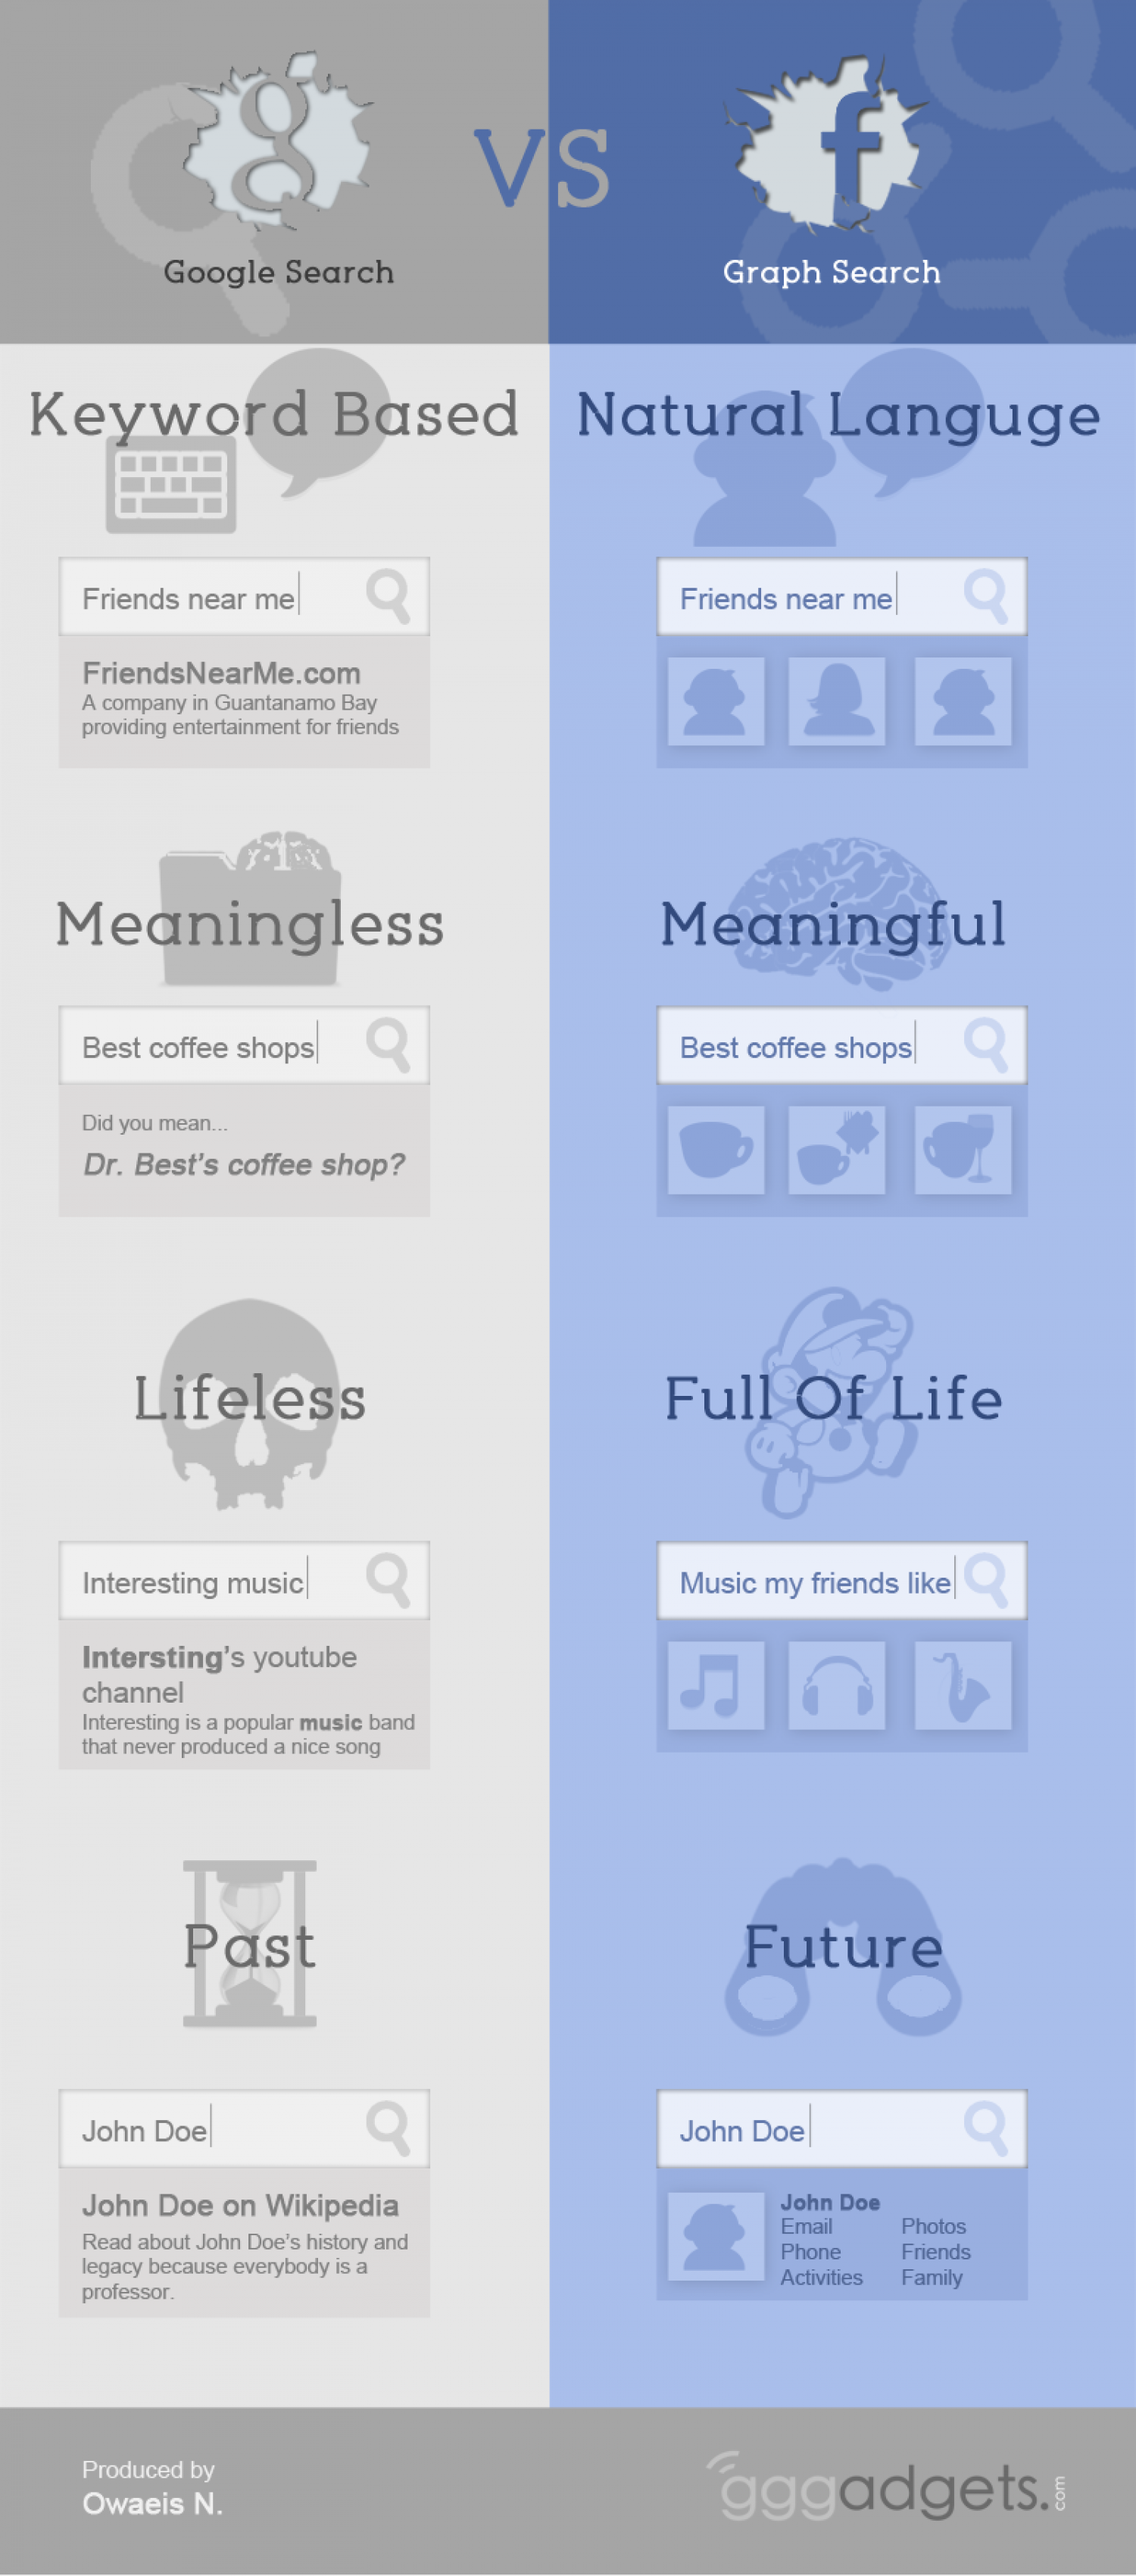 Google Search VS Facebook Graph Search Infographic